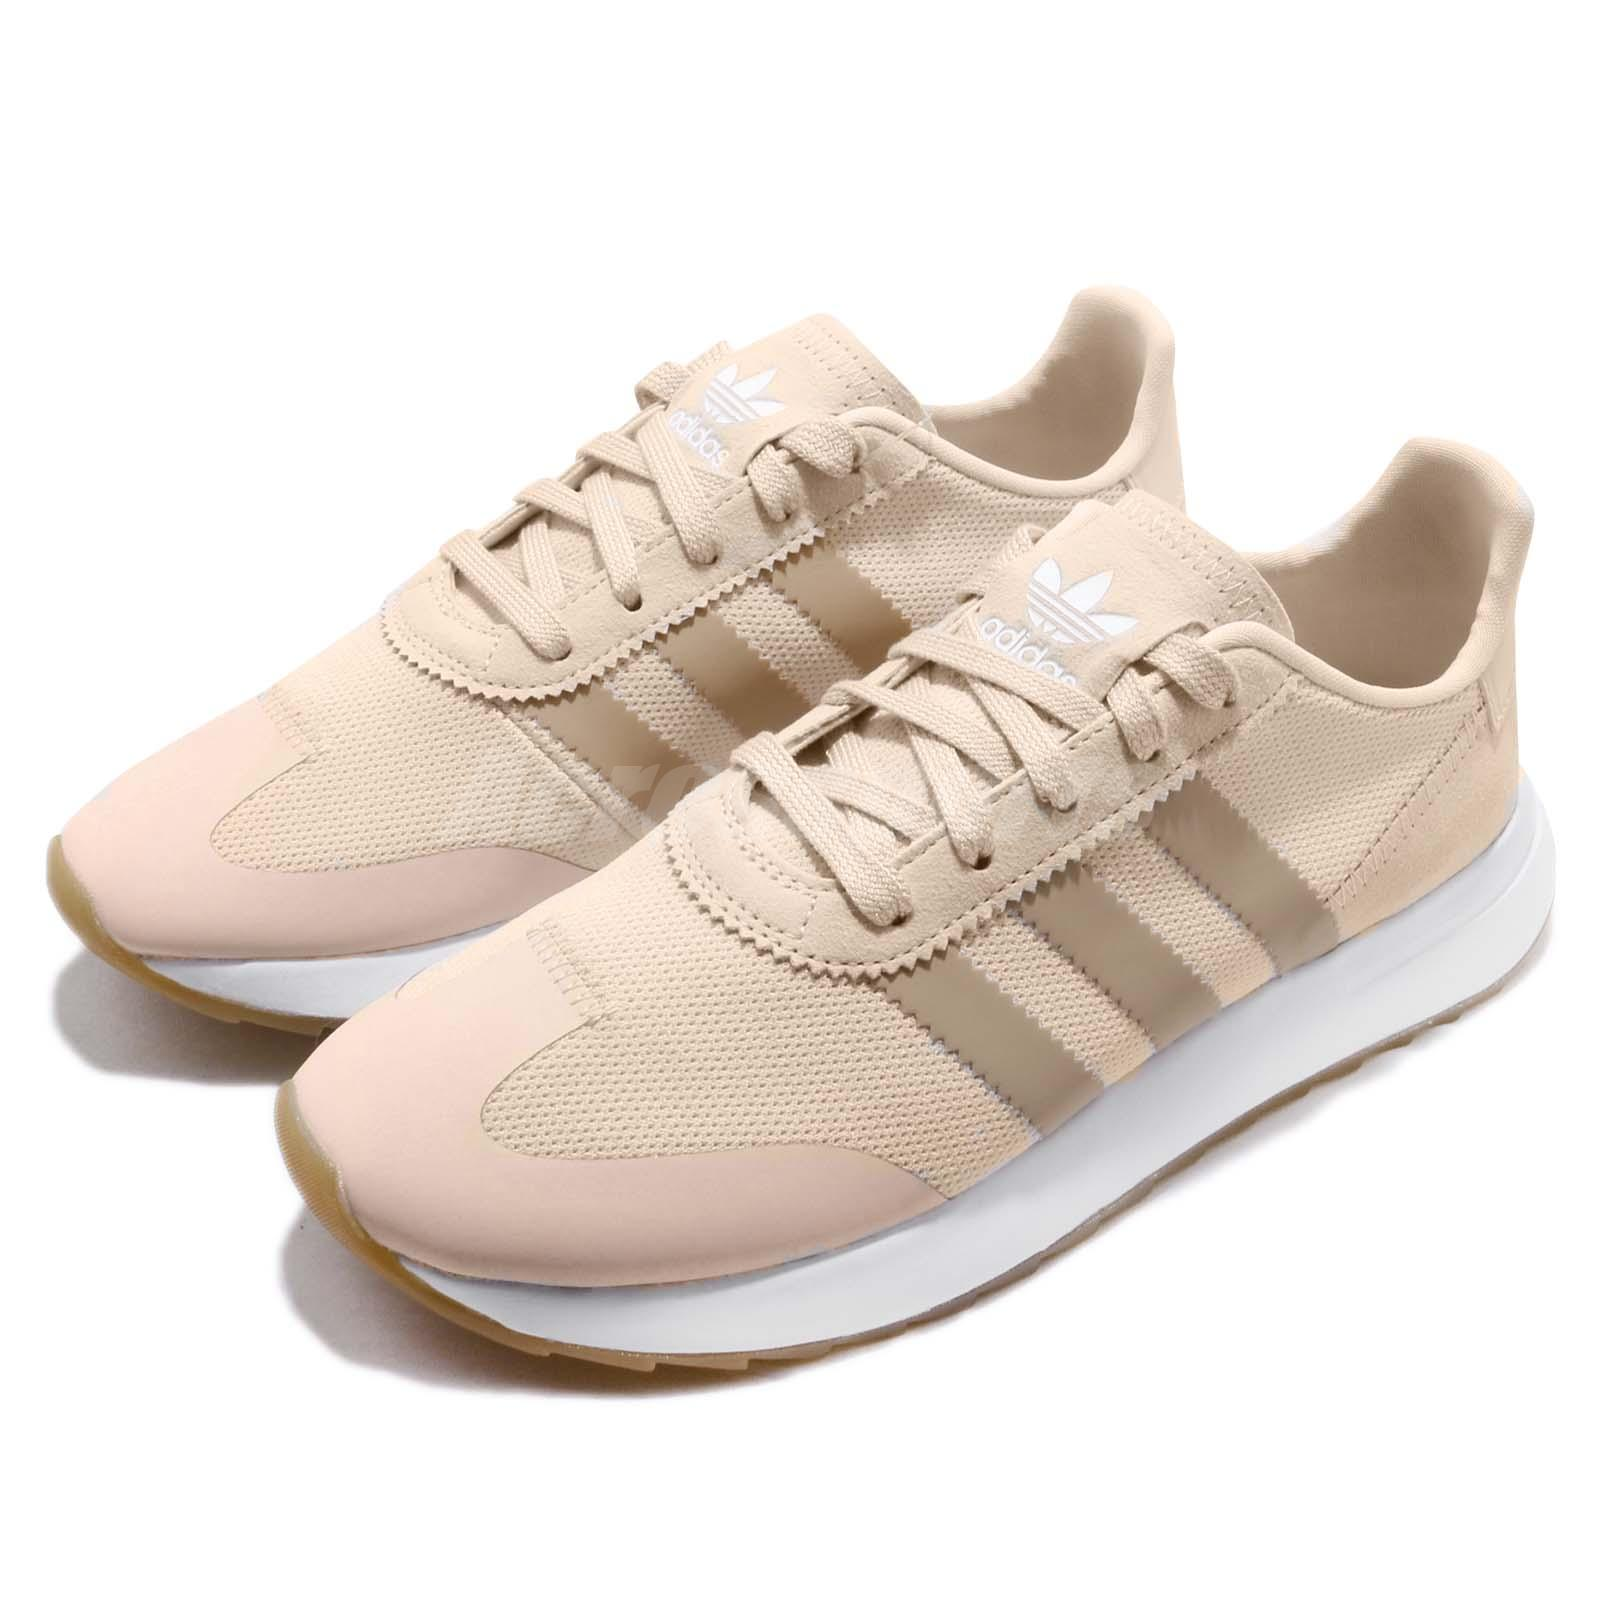 Details about adidas Originals FLB Runner W Linen Ash Pearl Gum Women  Running Shoes B28181 a6b51dc00db04